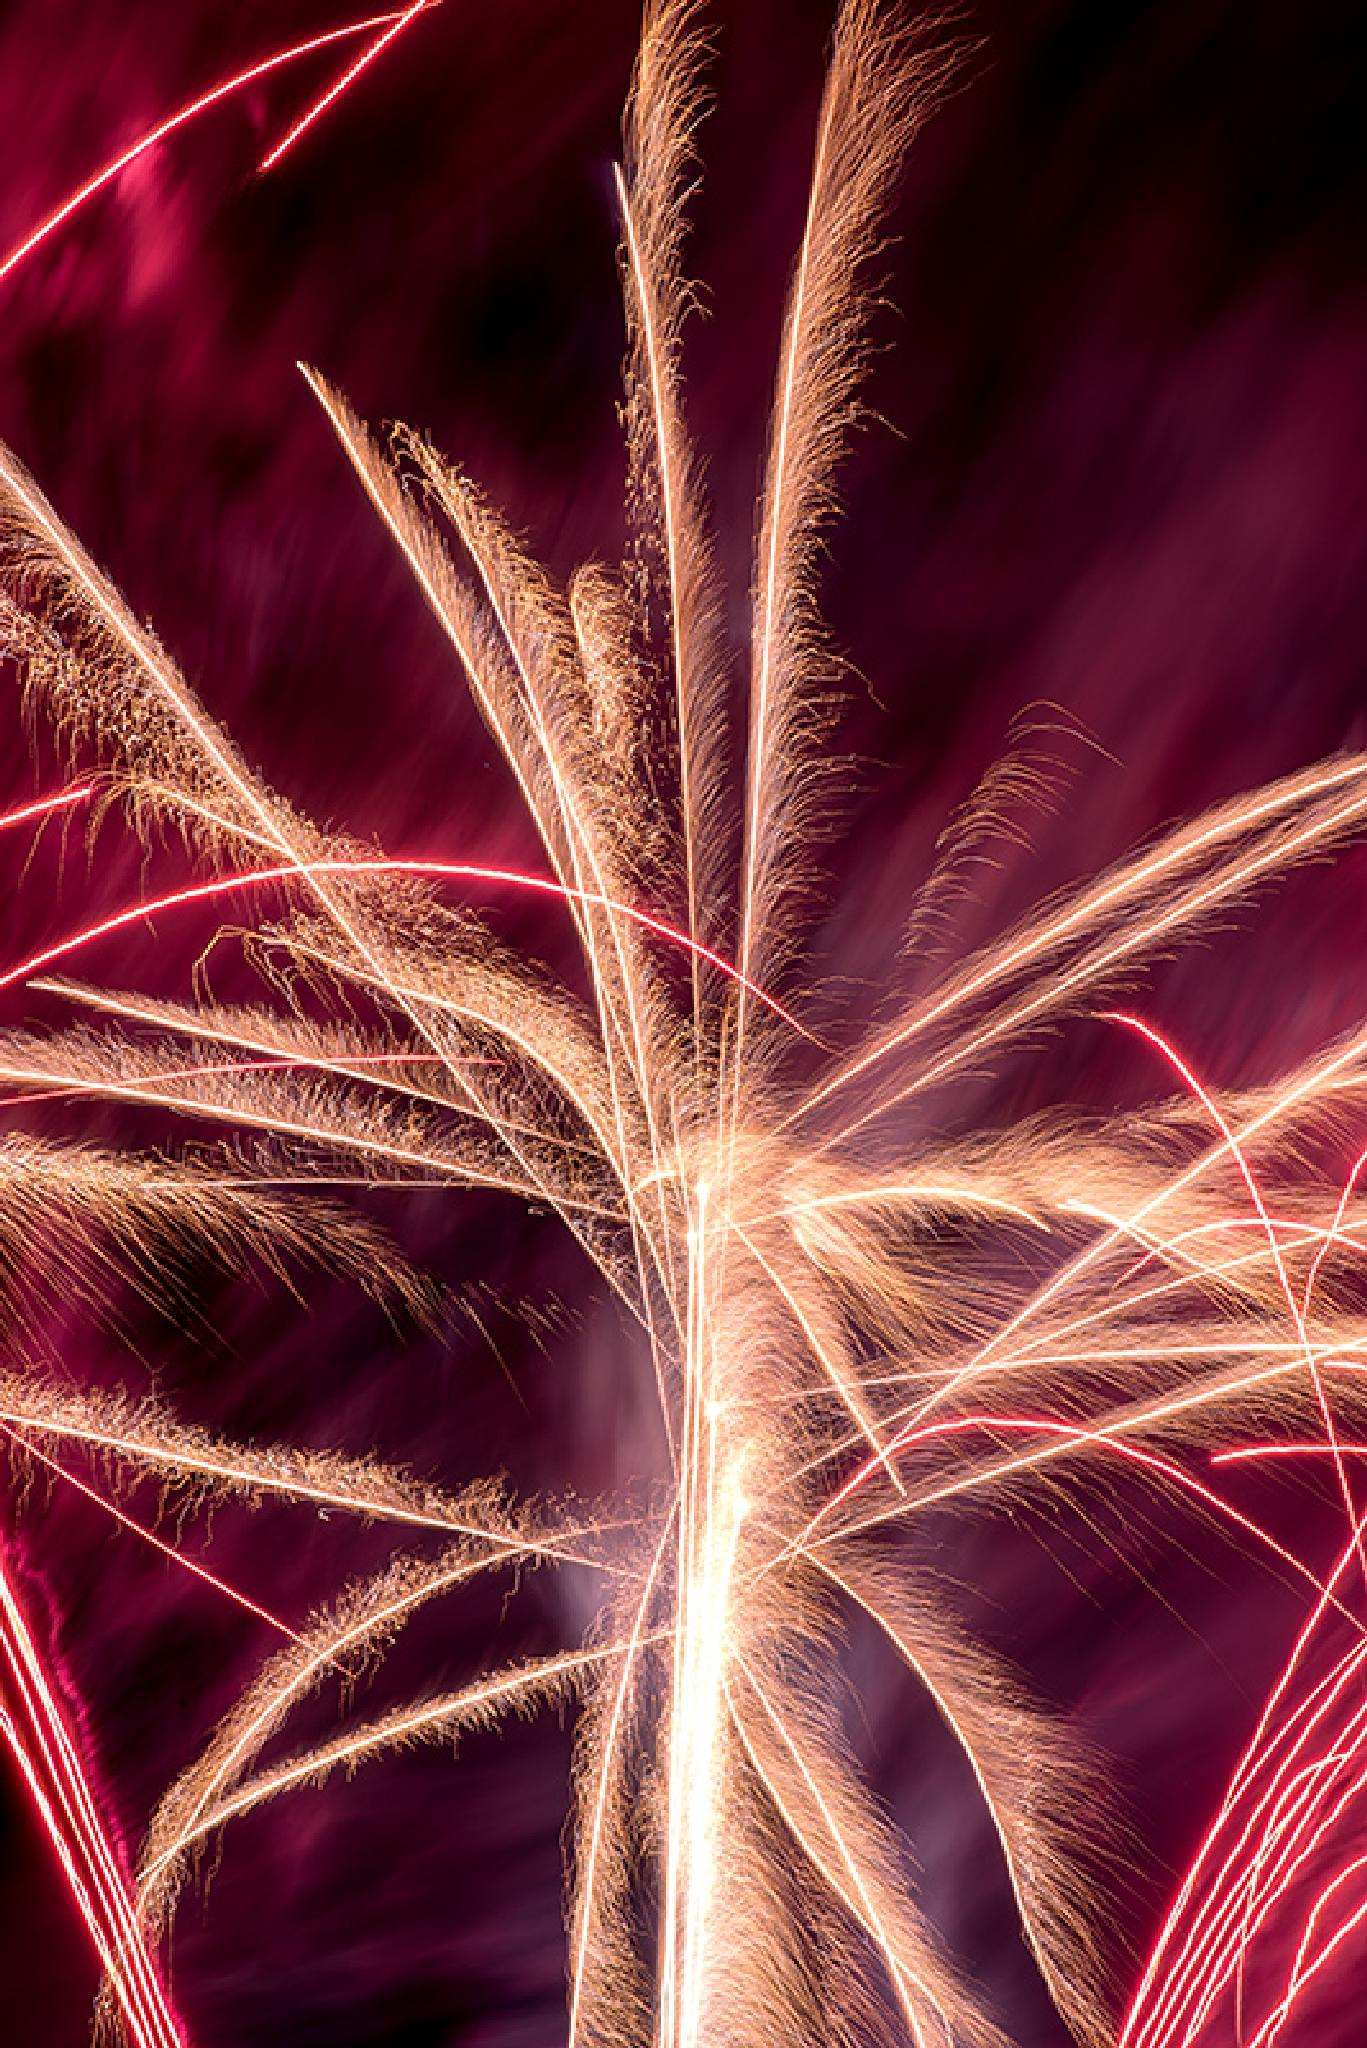 Fireworks Flare by David A. Dawson